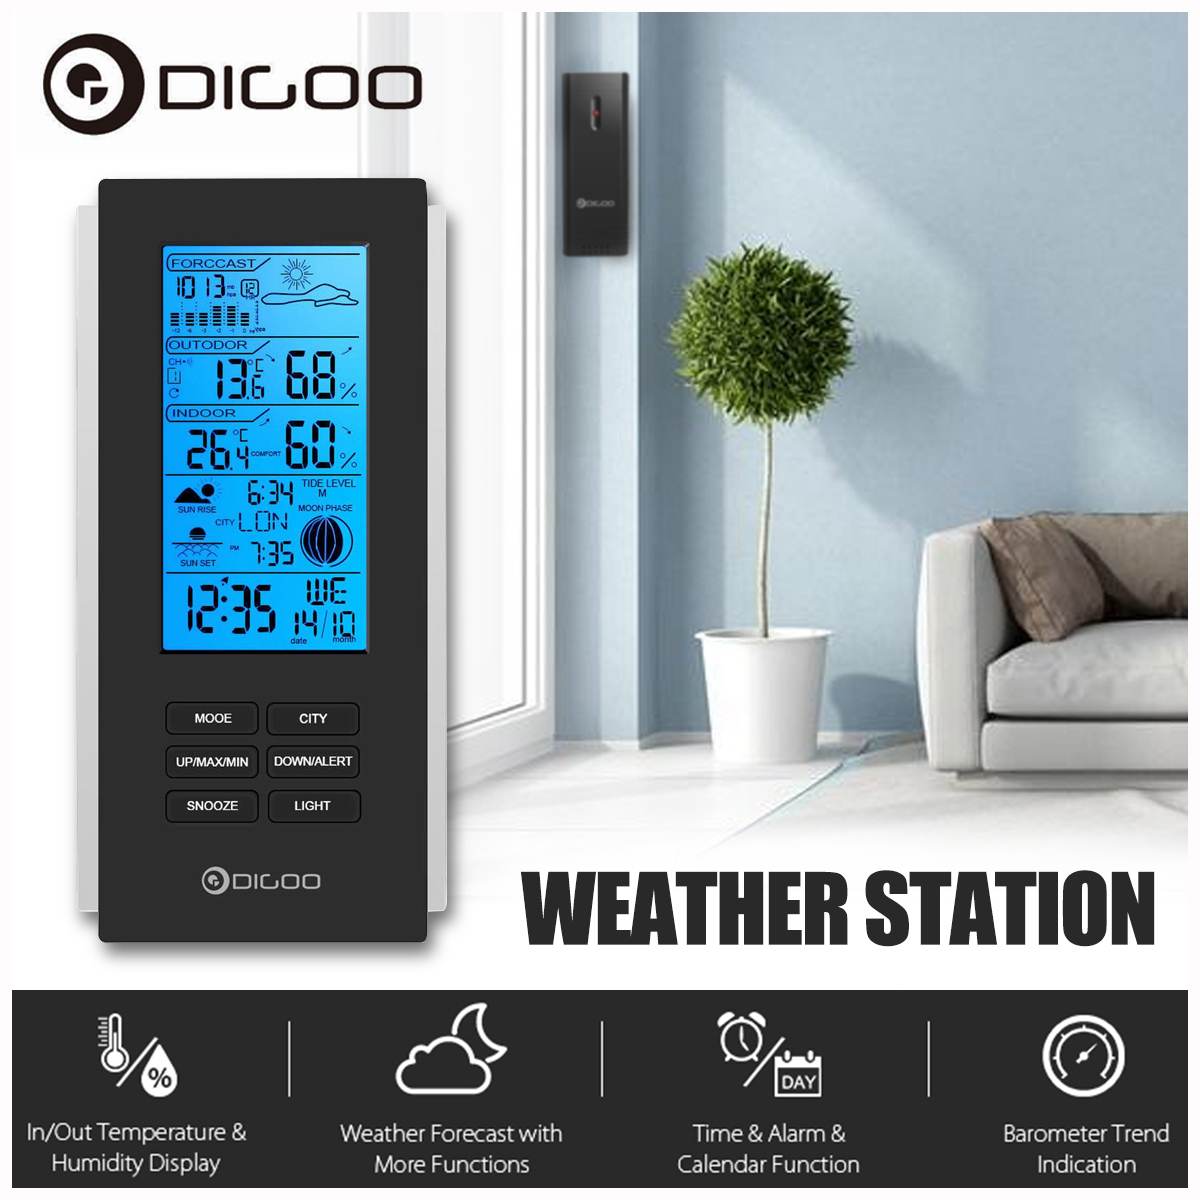 Digoo DG-TH6699 Wireless Weather Forecast Station Calendar Snooze Alarm Clock,Indoor Thermometer Hydrometer Temperature Humidity Barometer Display Monitor With Outdoor Sensor